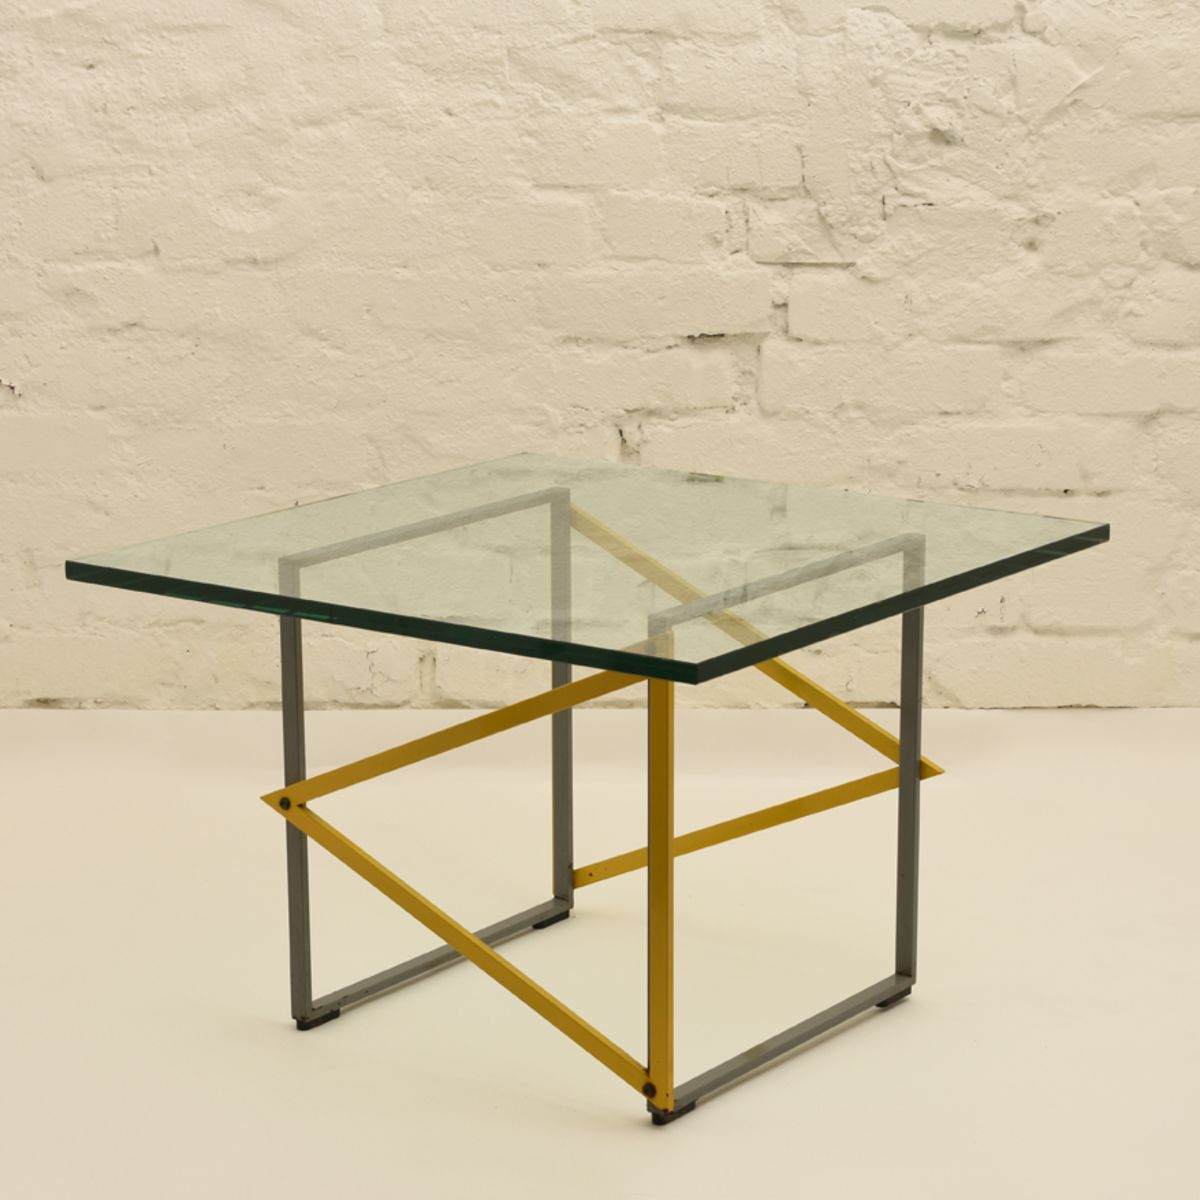 Kukkapuro Yrjö Square Glass Table